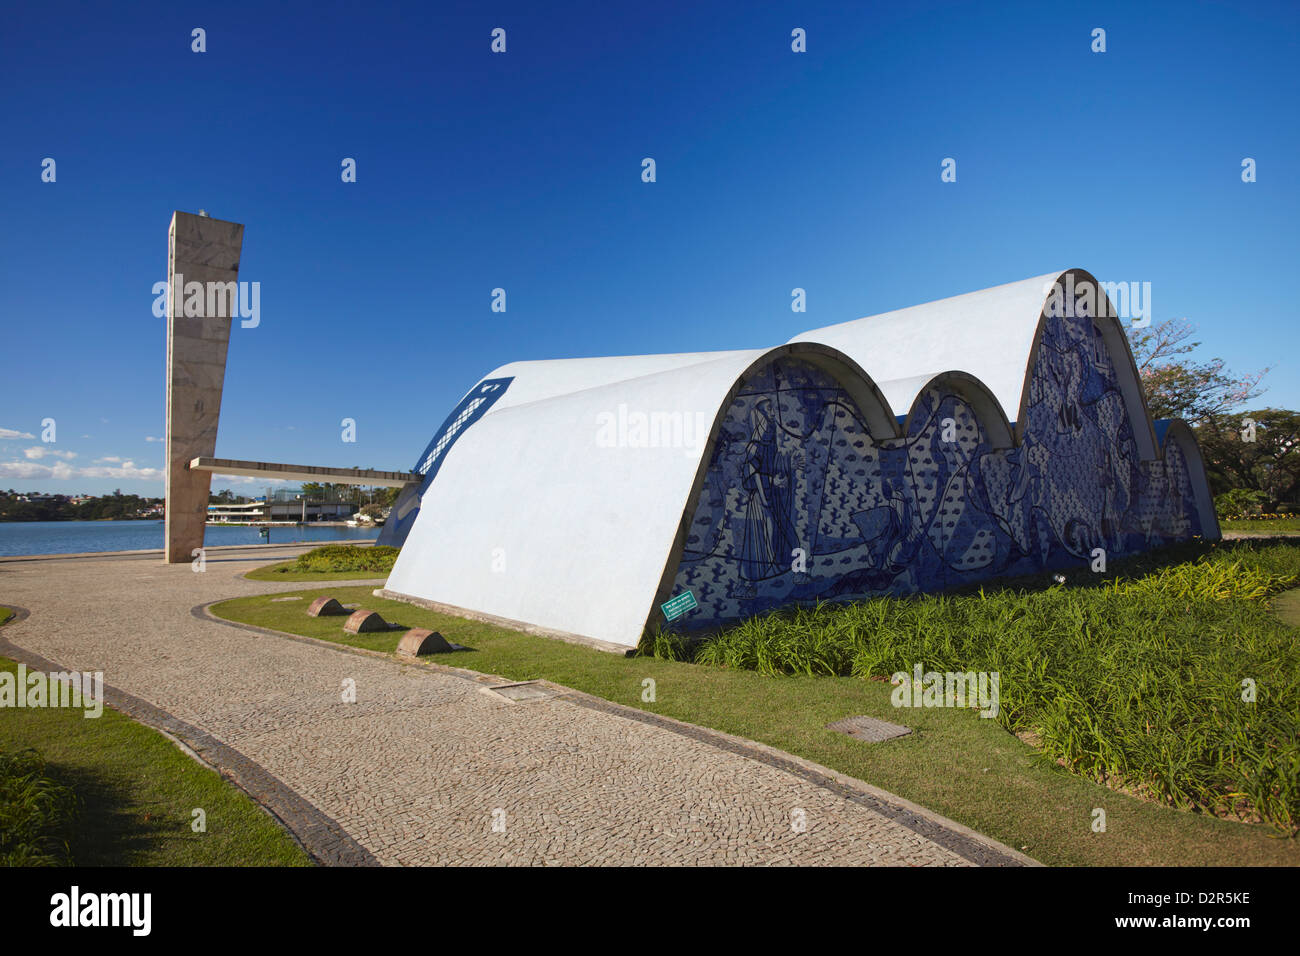 Church of St. Francis of Assisi, designed by Oscar Niemeyer, Pampulha Lake, Pampulha, Belo Horizonte, Minas Gerais, - Stock Image